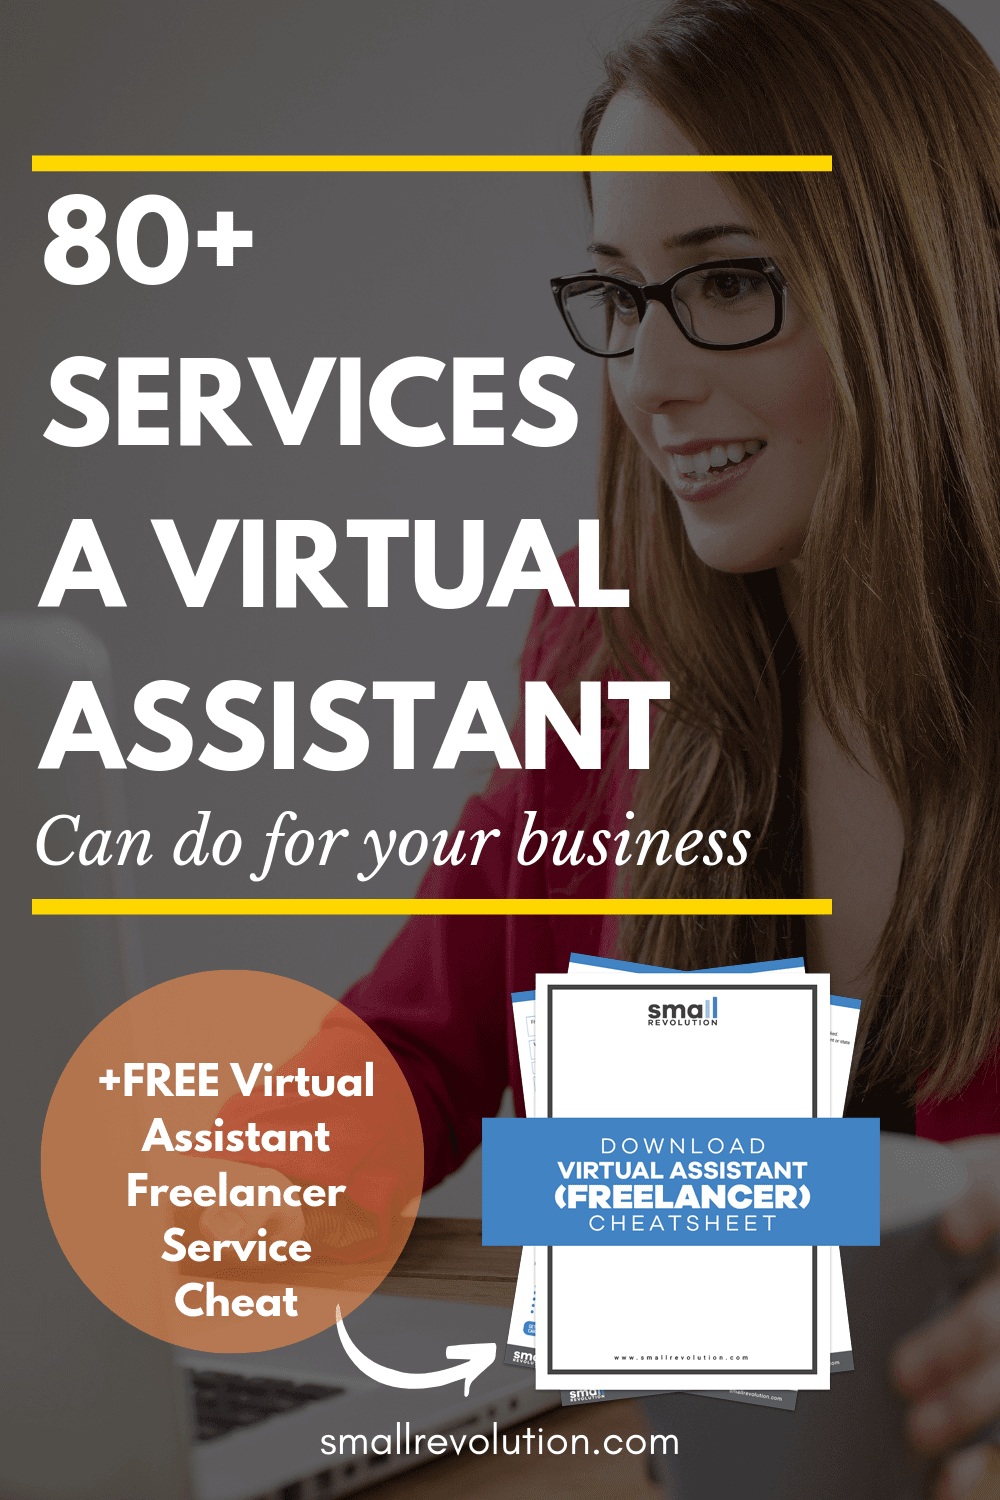 80+ A Virtual Assistant Can Do For Your Business